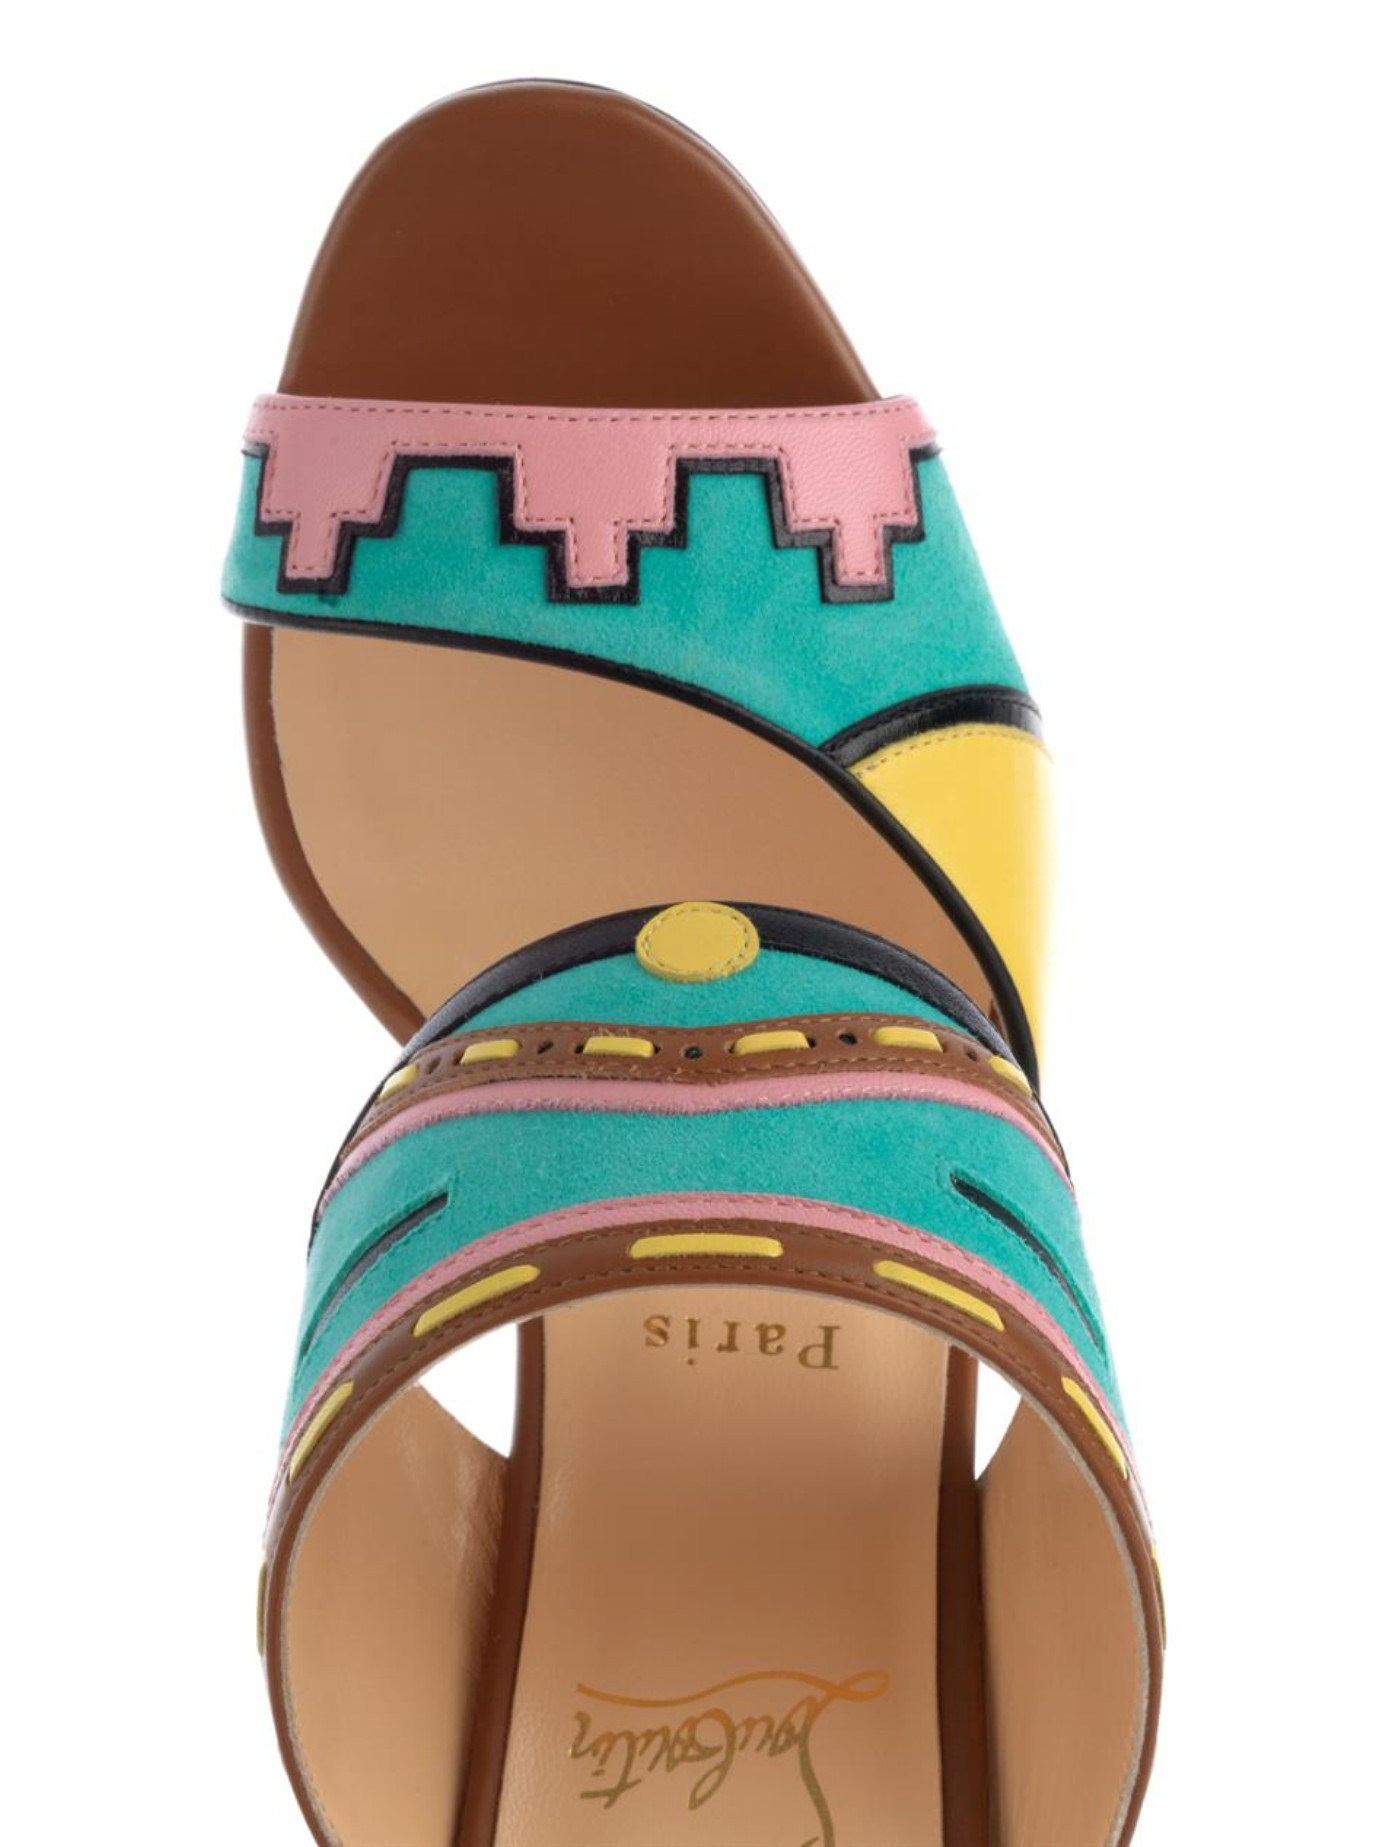 christian louis button shoes - Christian louboutin Azunika Suede and Leather Mules in Multicolor ...